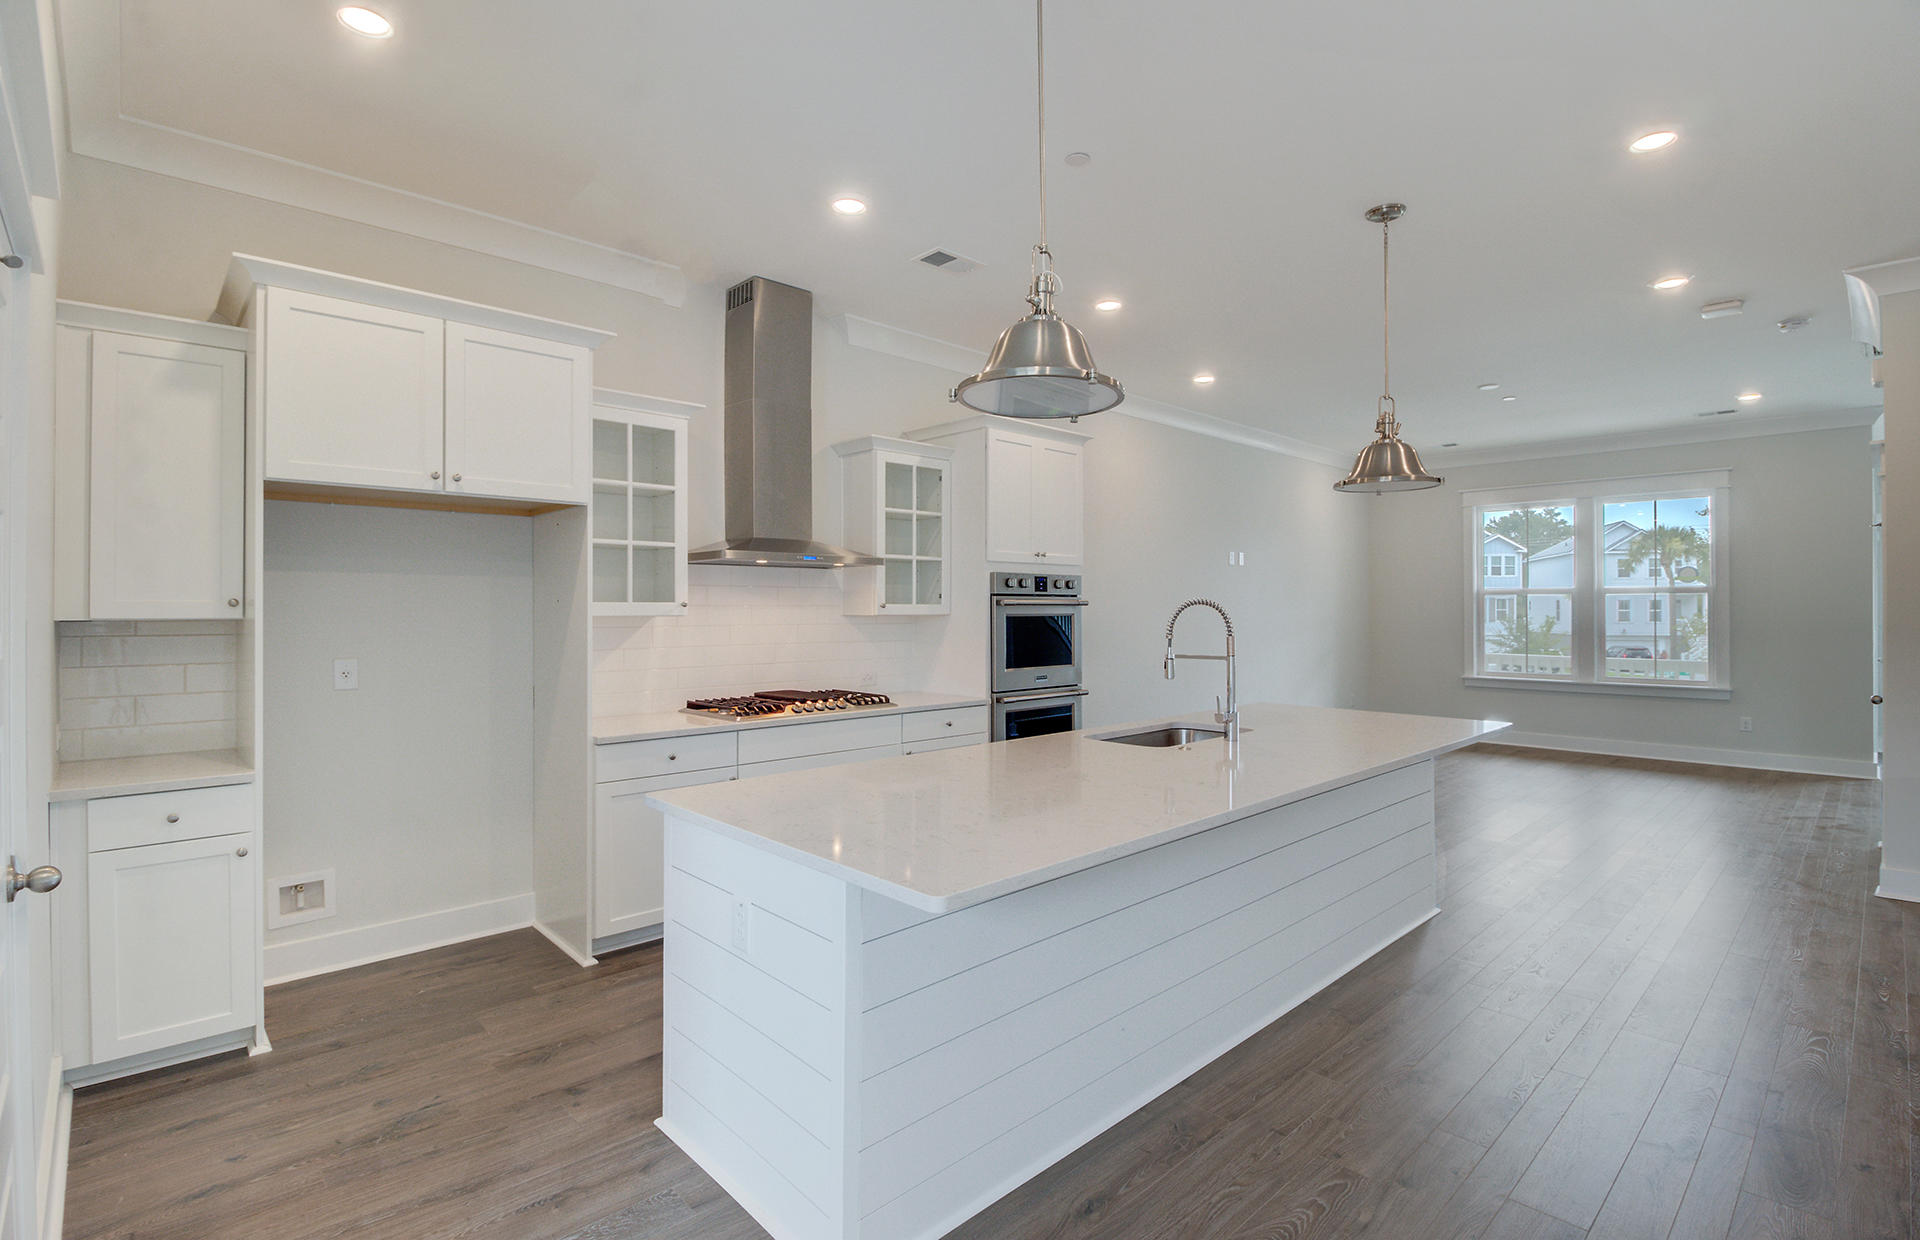 Governors Cay Homes For Sale - 814 Kings Oak, Charleston, SC - 16